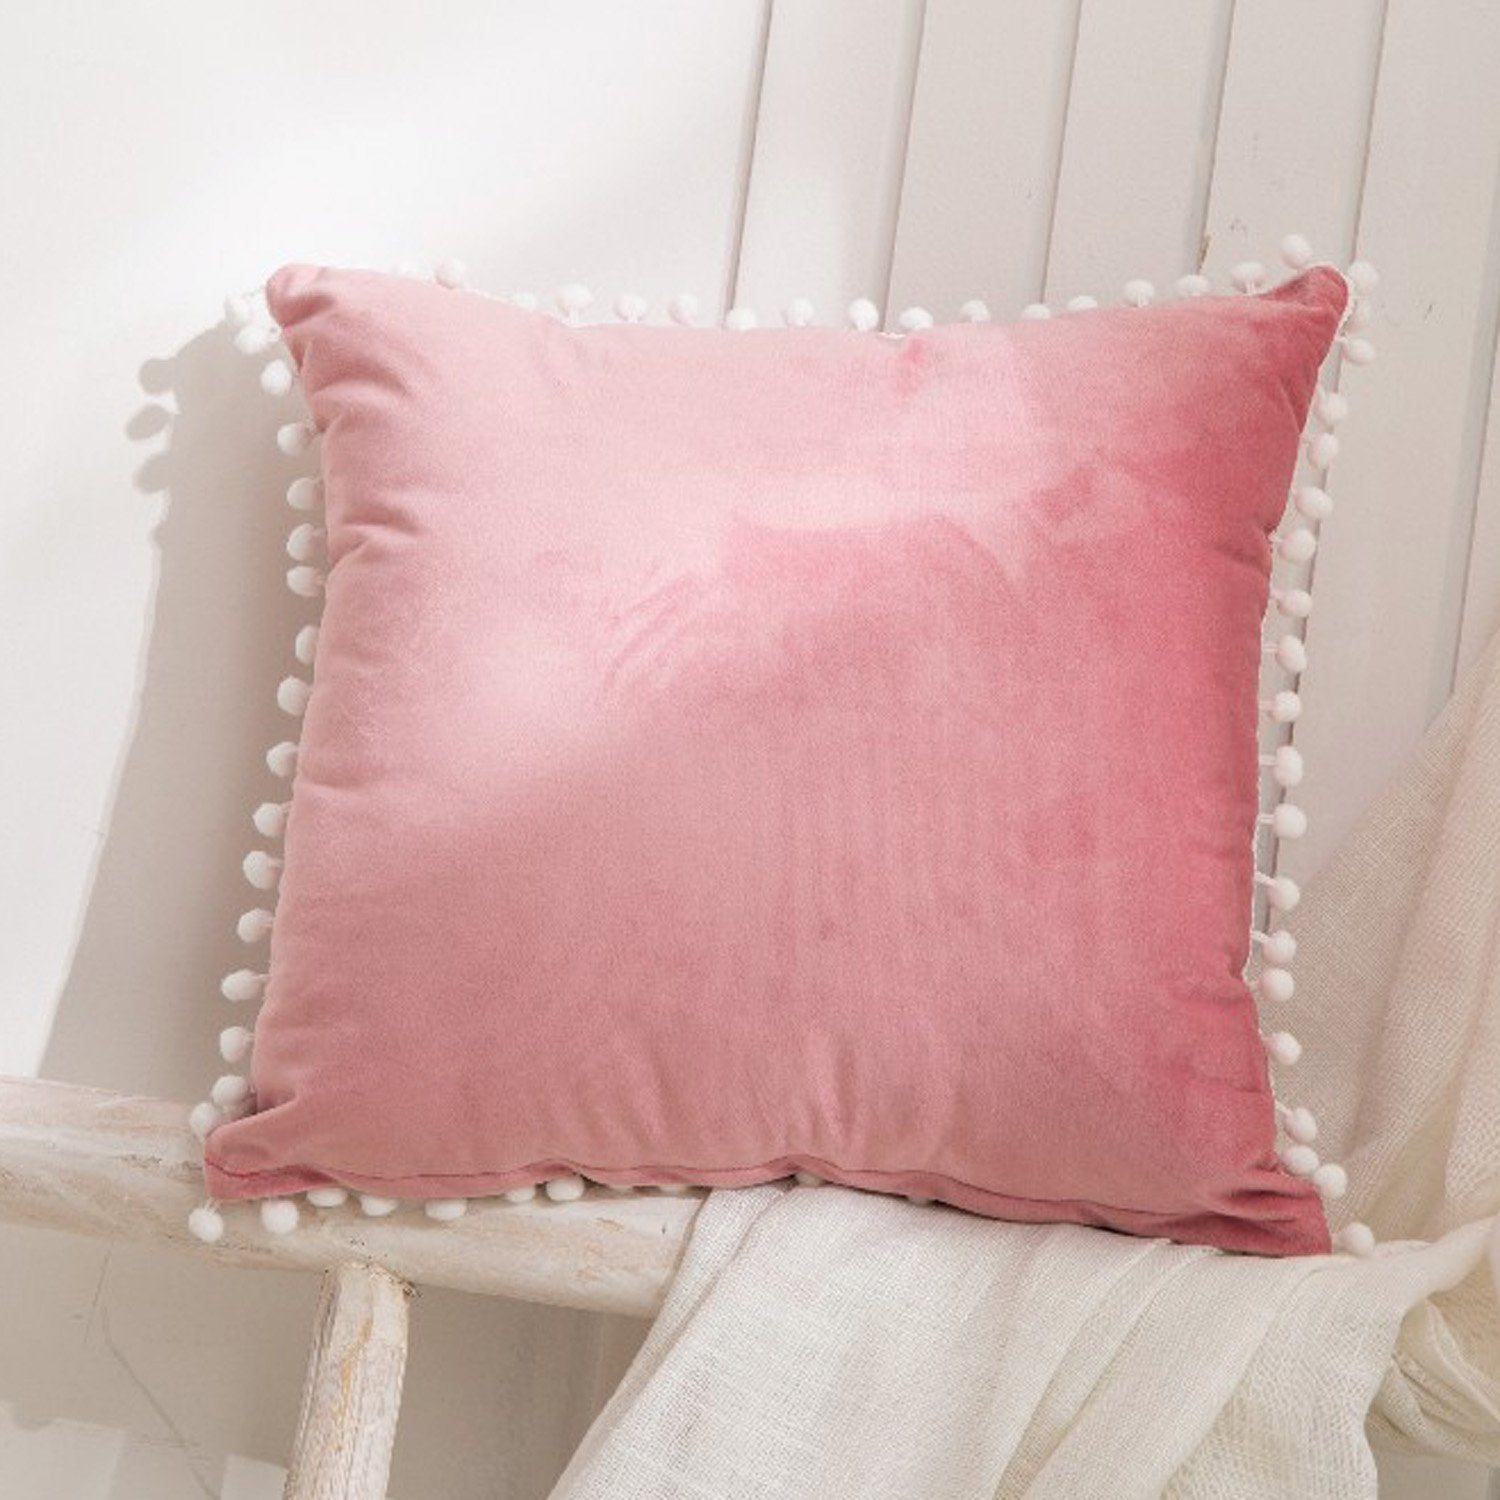 Velvet Pom Pom Cushions - Violet and Eve